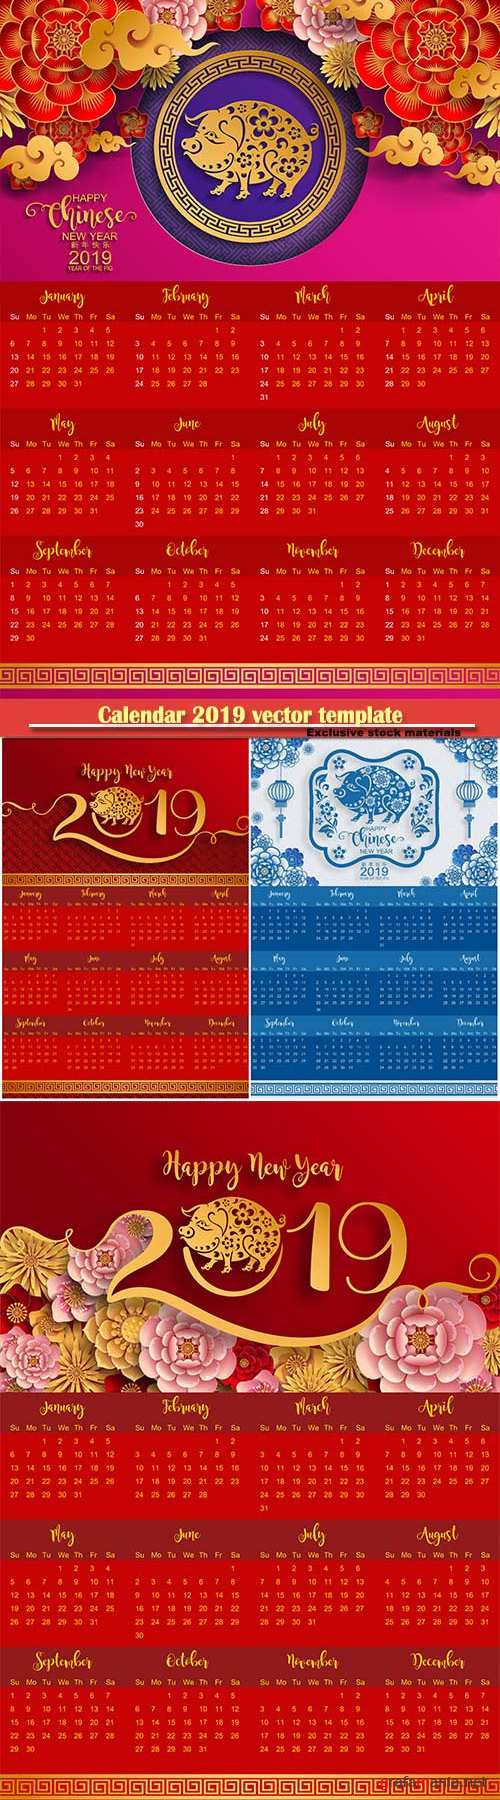 Calendar 2019 vector template, 12 months included